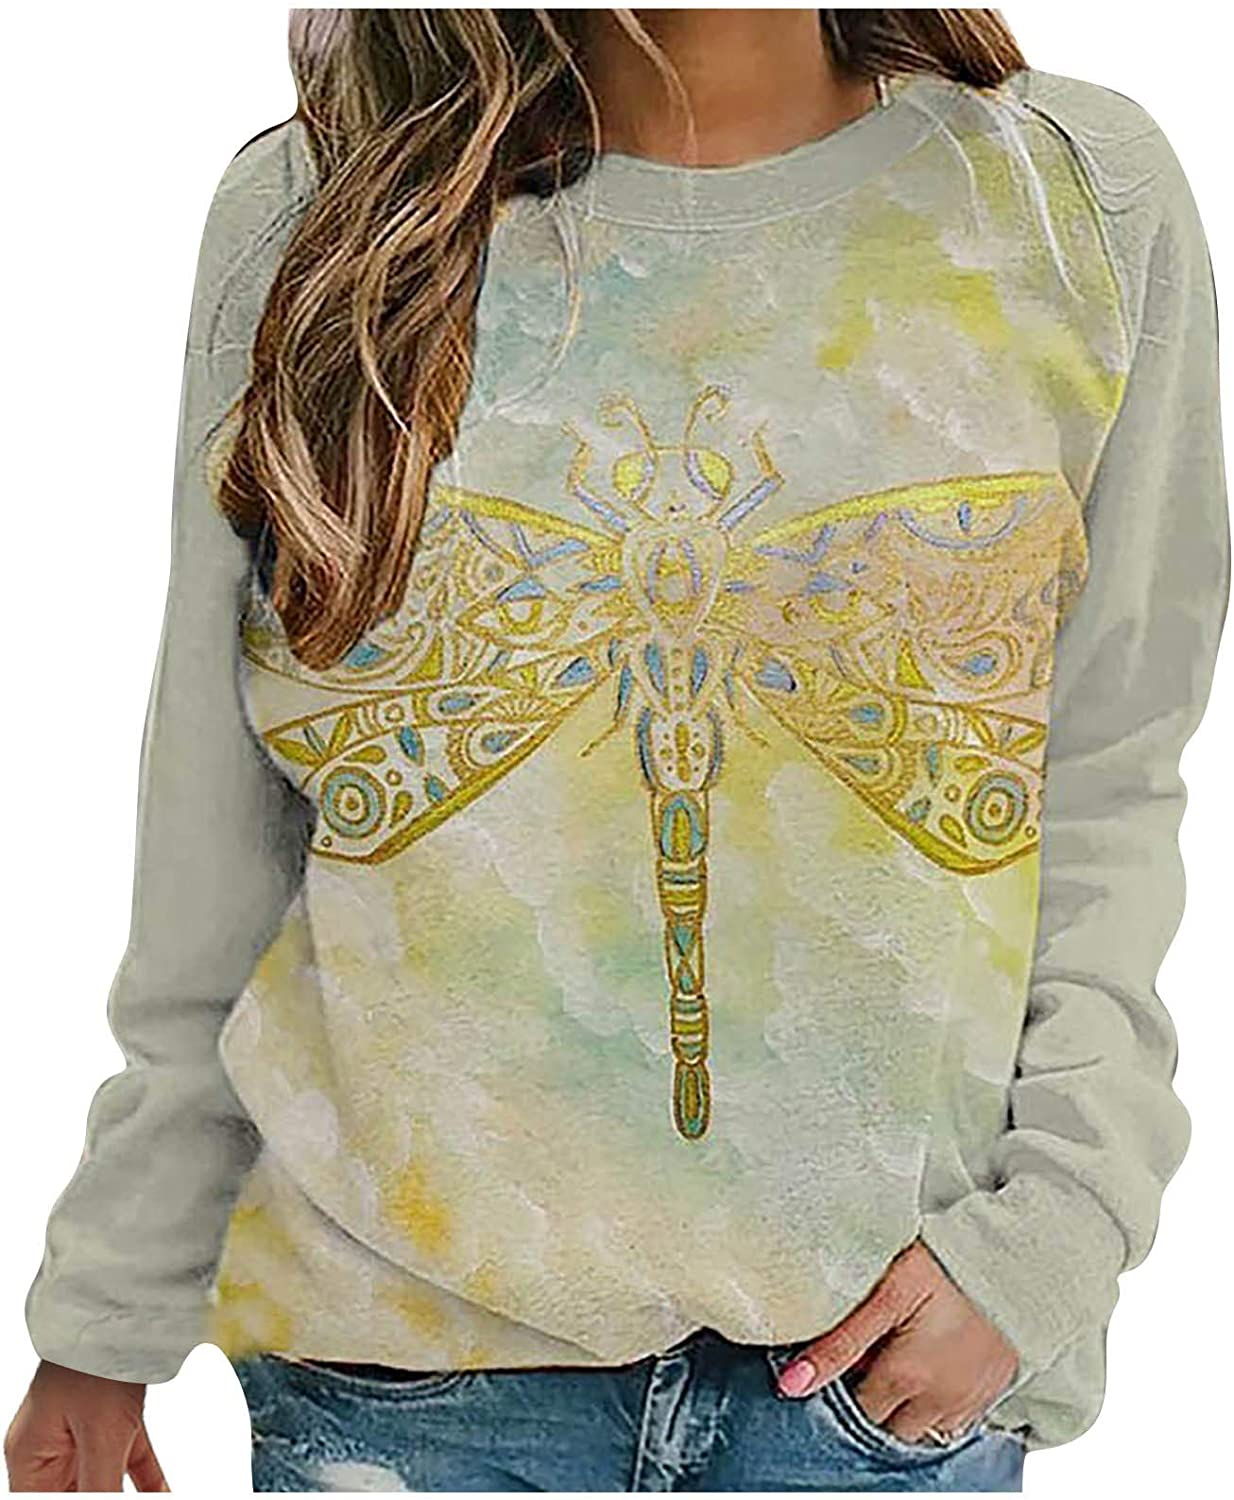 Eoailr Fashionable Womens Lightweight Daisy Dragonfly Crewn Top Letter New color Print